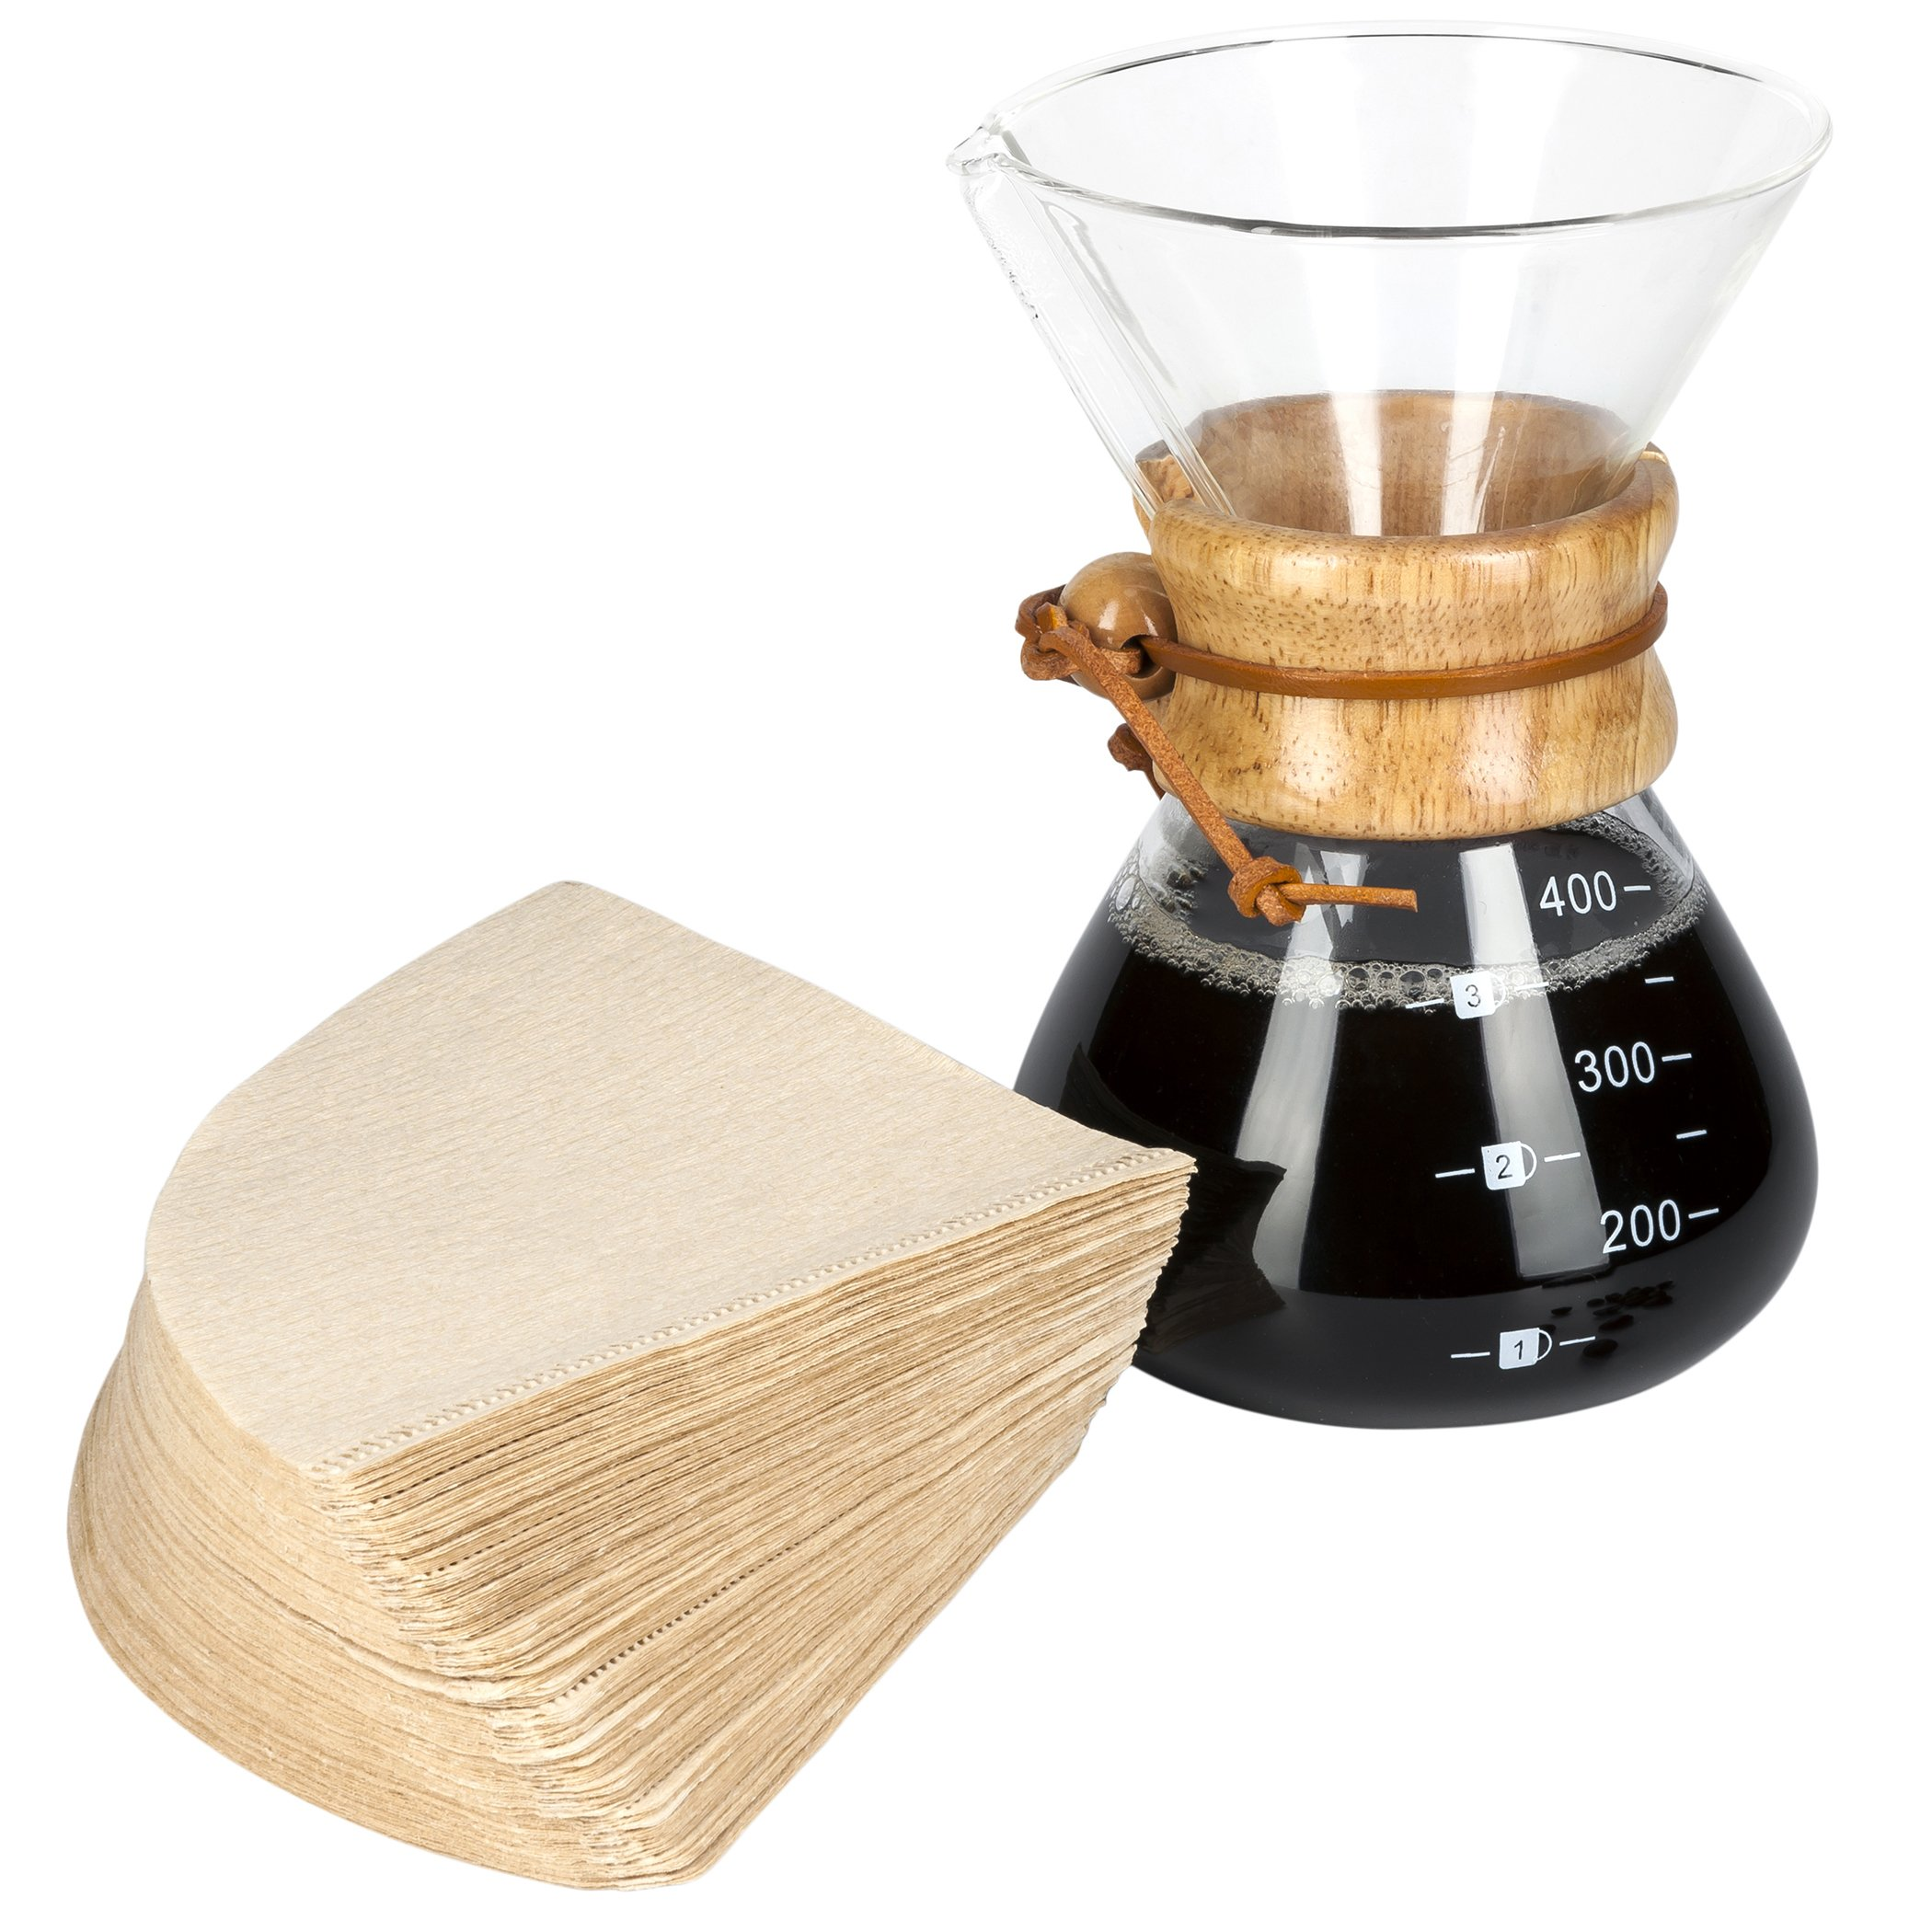 LVKH Pour Over Coffee Maker - Includes 100 Paper Filters - (13.5 ounces, 1 Cup) by LVKH